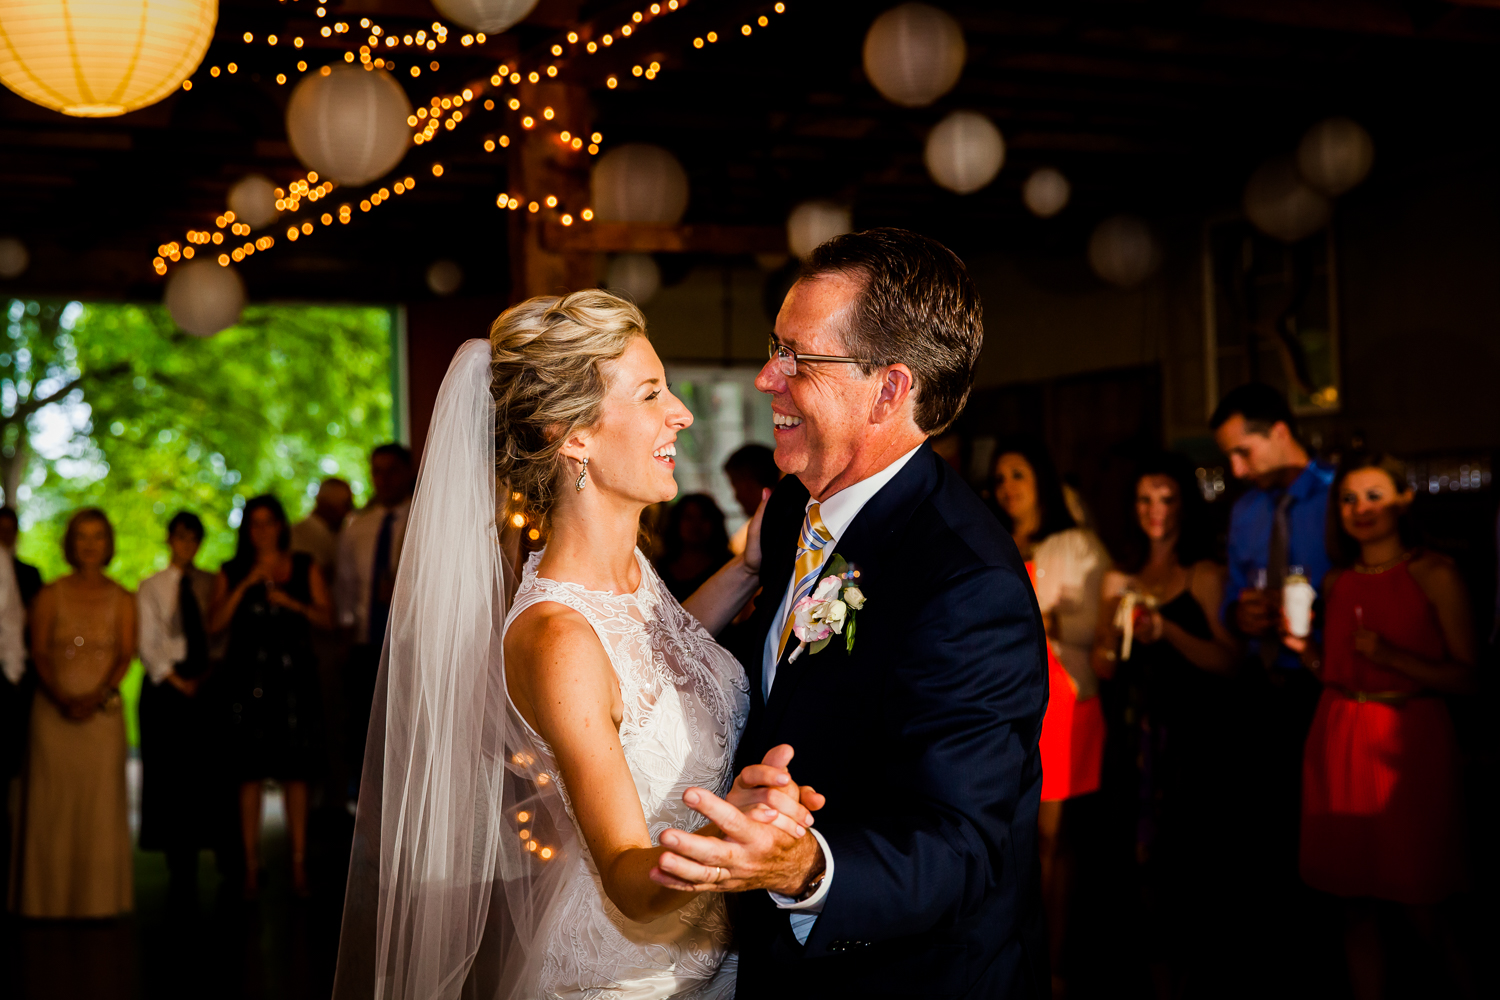 Father and bride share a dance at a barn wedding.